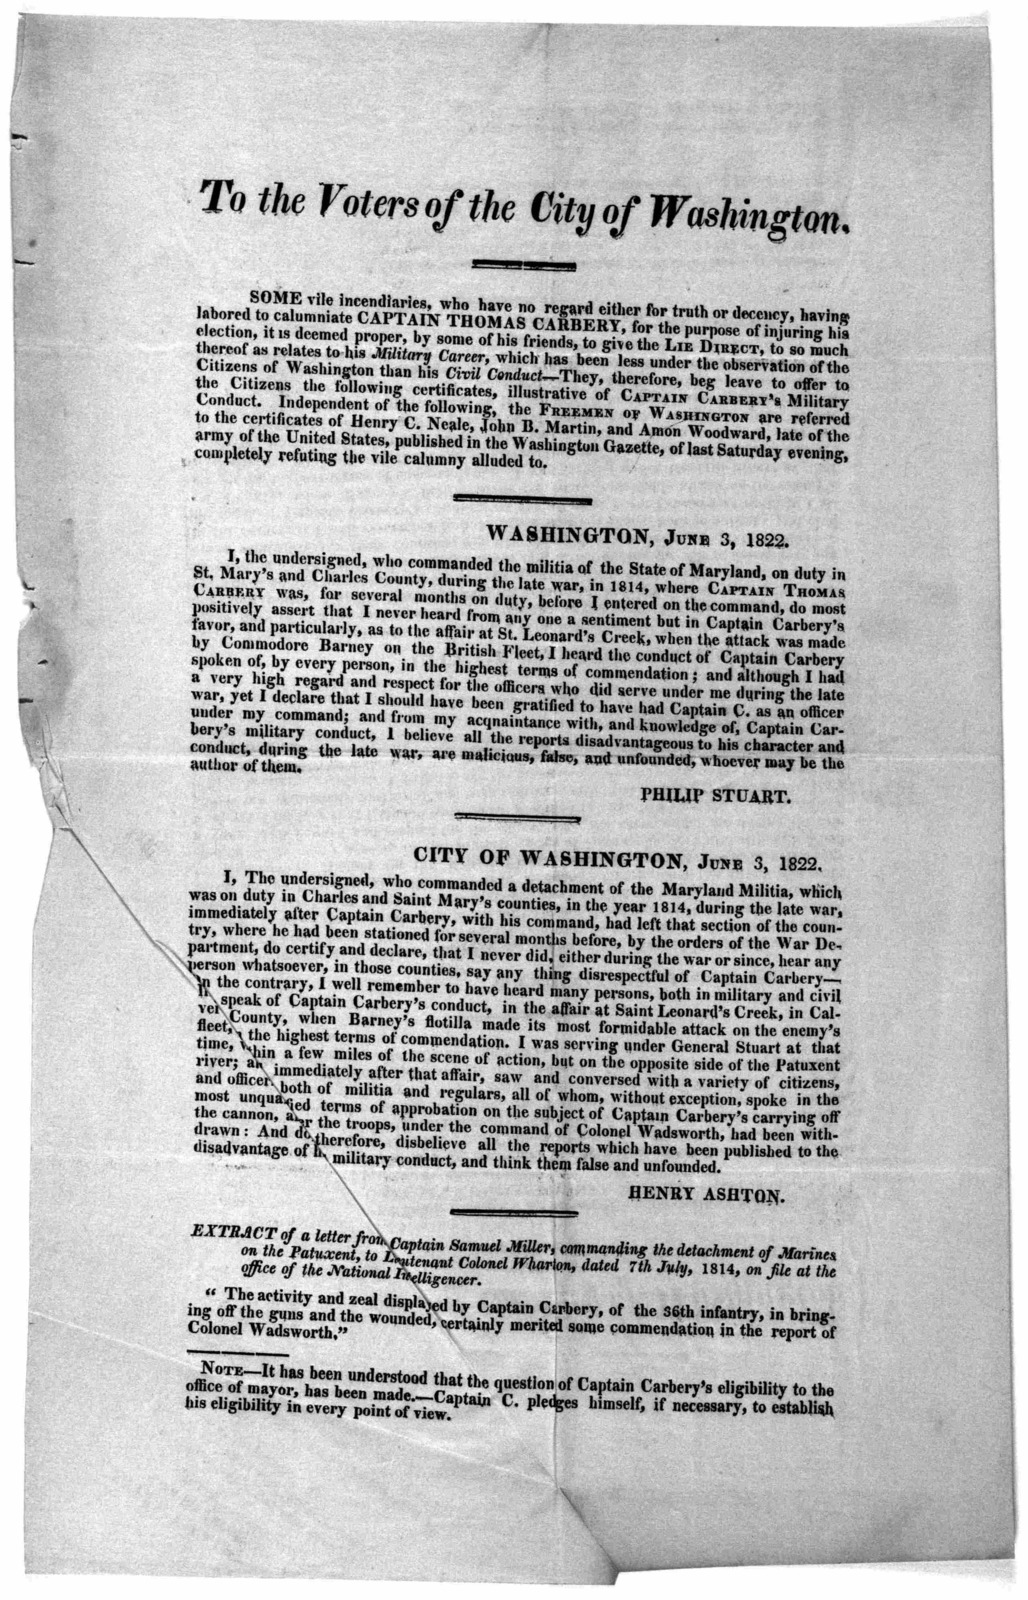 To the voters of the City of Washington. Some vile incendiaries, who have no regard either for truth or decency, having labored to calumniate Captain Thomas Carbery, for the purpose of injuring his election, it is deemed proper by some of his fr